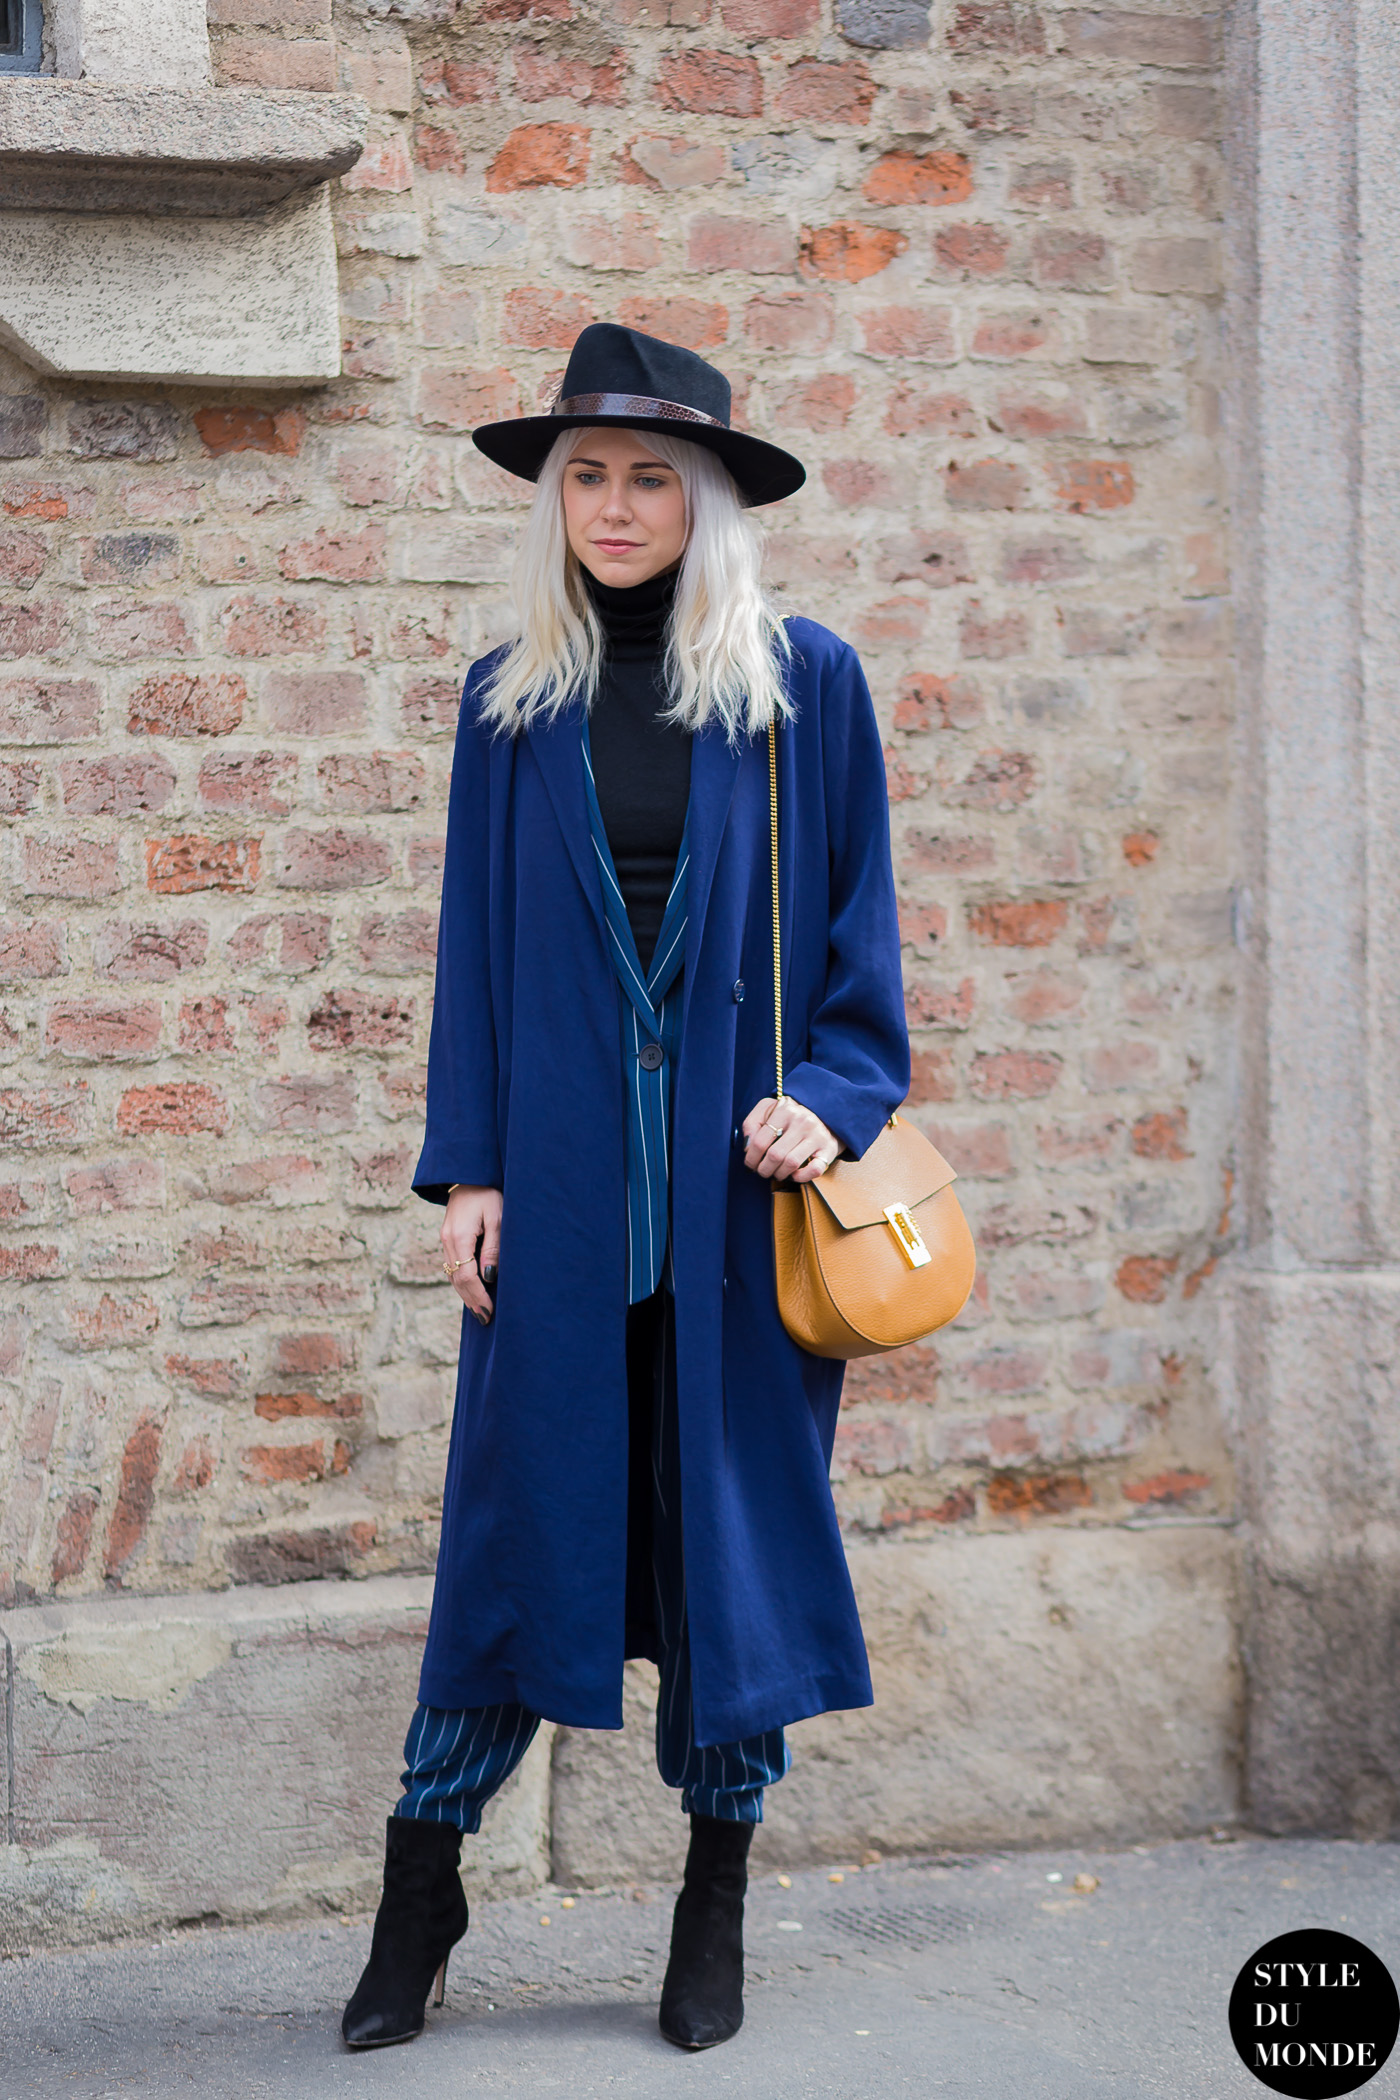 Courtney Trop alwaysjudging Street Style Street Fashion Streetsnaps by STYLEDUMONDE Street Style Fashion Photography